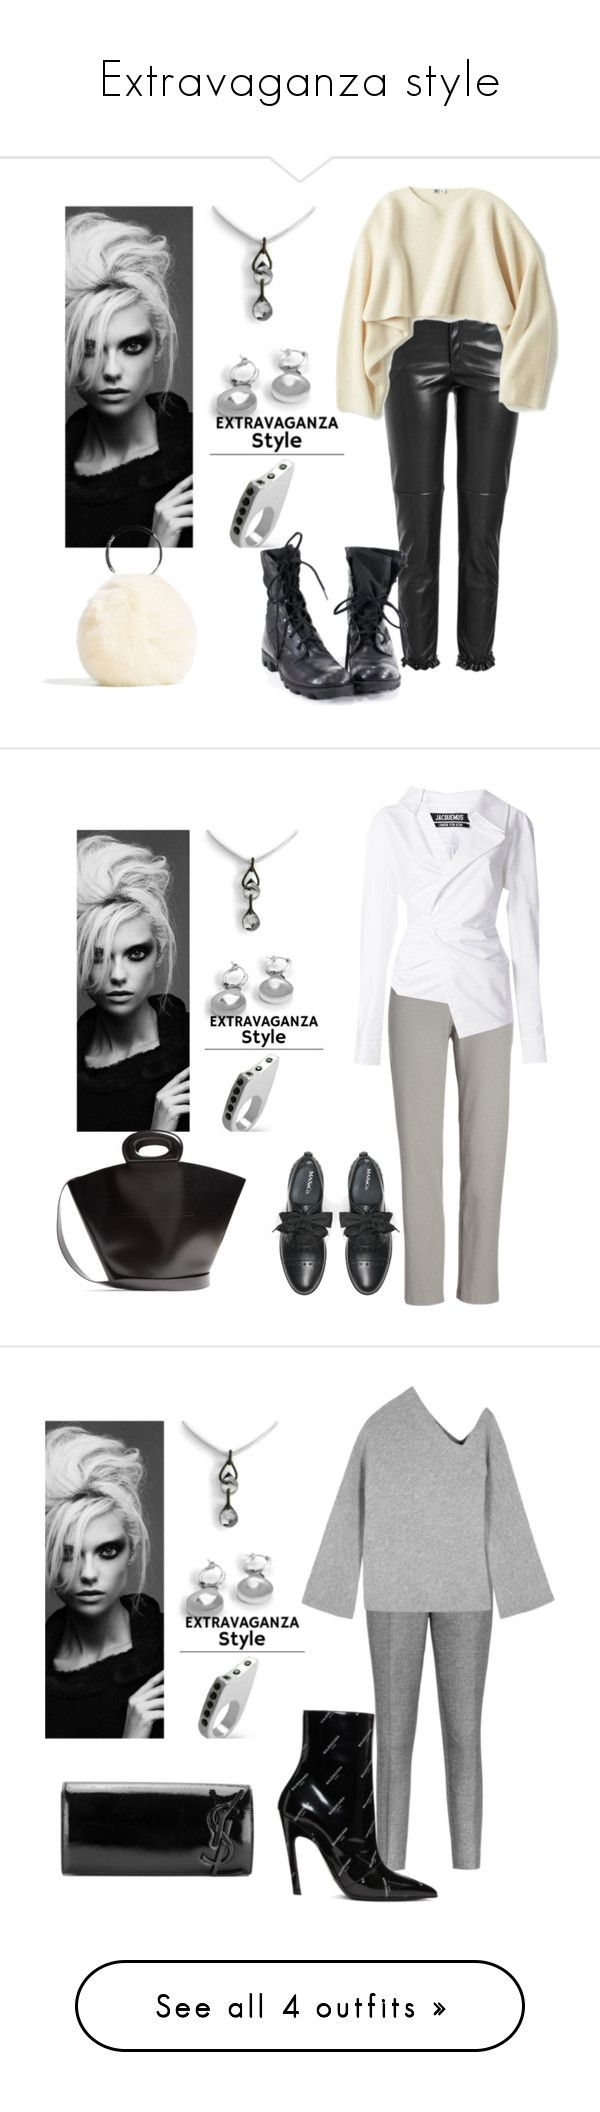 Extravaganza style by sofiacalo on Polyvore featuring polyvore fashion style Philosophy di Lorenzo Serafini Uniqlo clothing Eileen Fisher Jacquemus Max&Co. Lemaire Reiss A.L.C. Balenciaga Yves Saint Laurent Alexander Wang Christian Louboutin